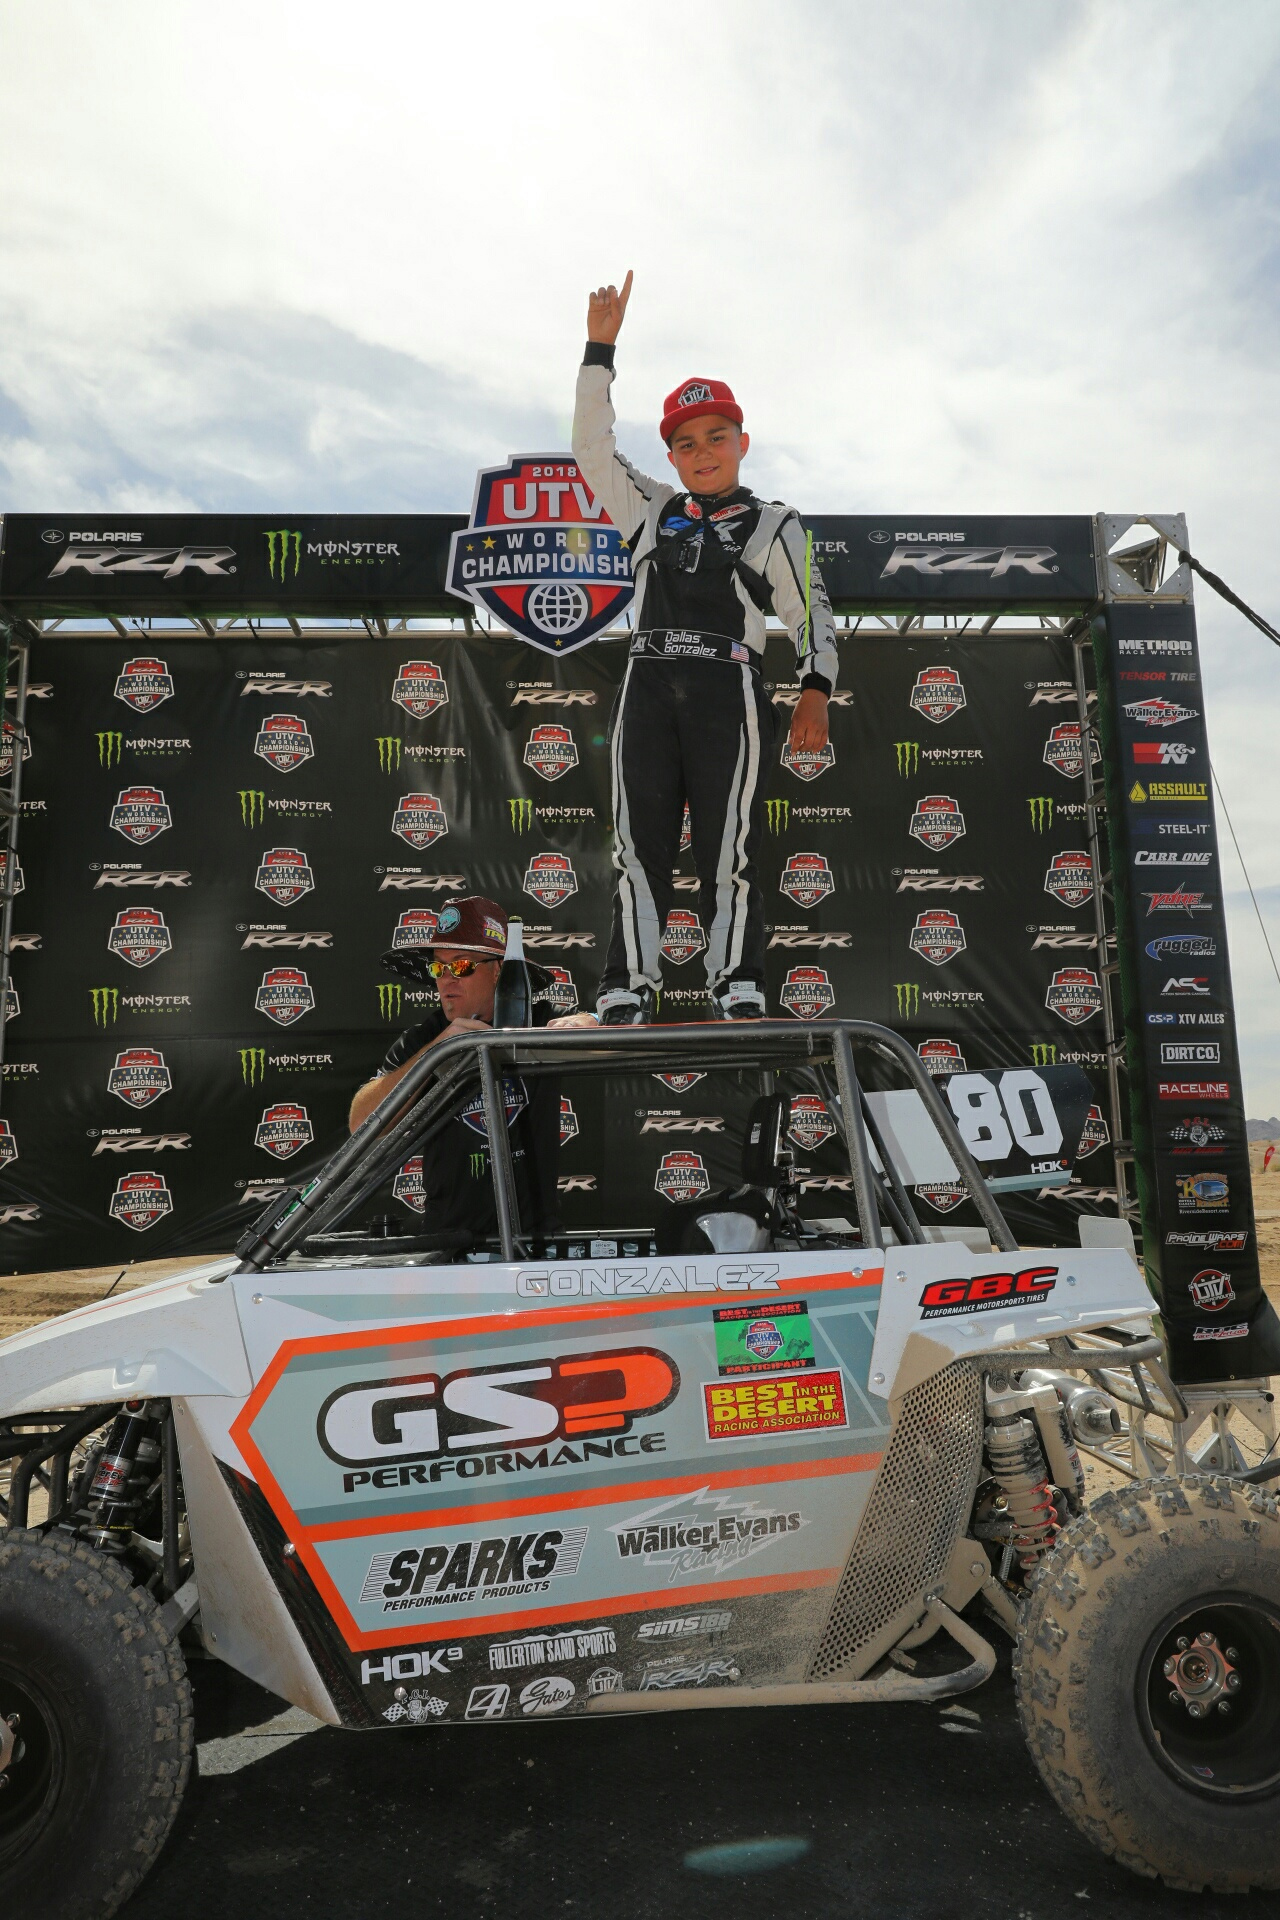 Youth Racing Highlights Day Two of the UTV World Championship